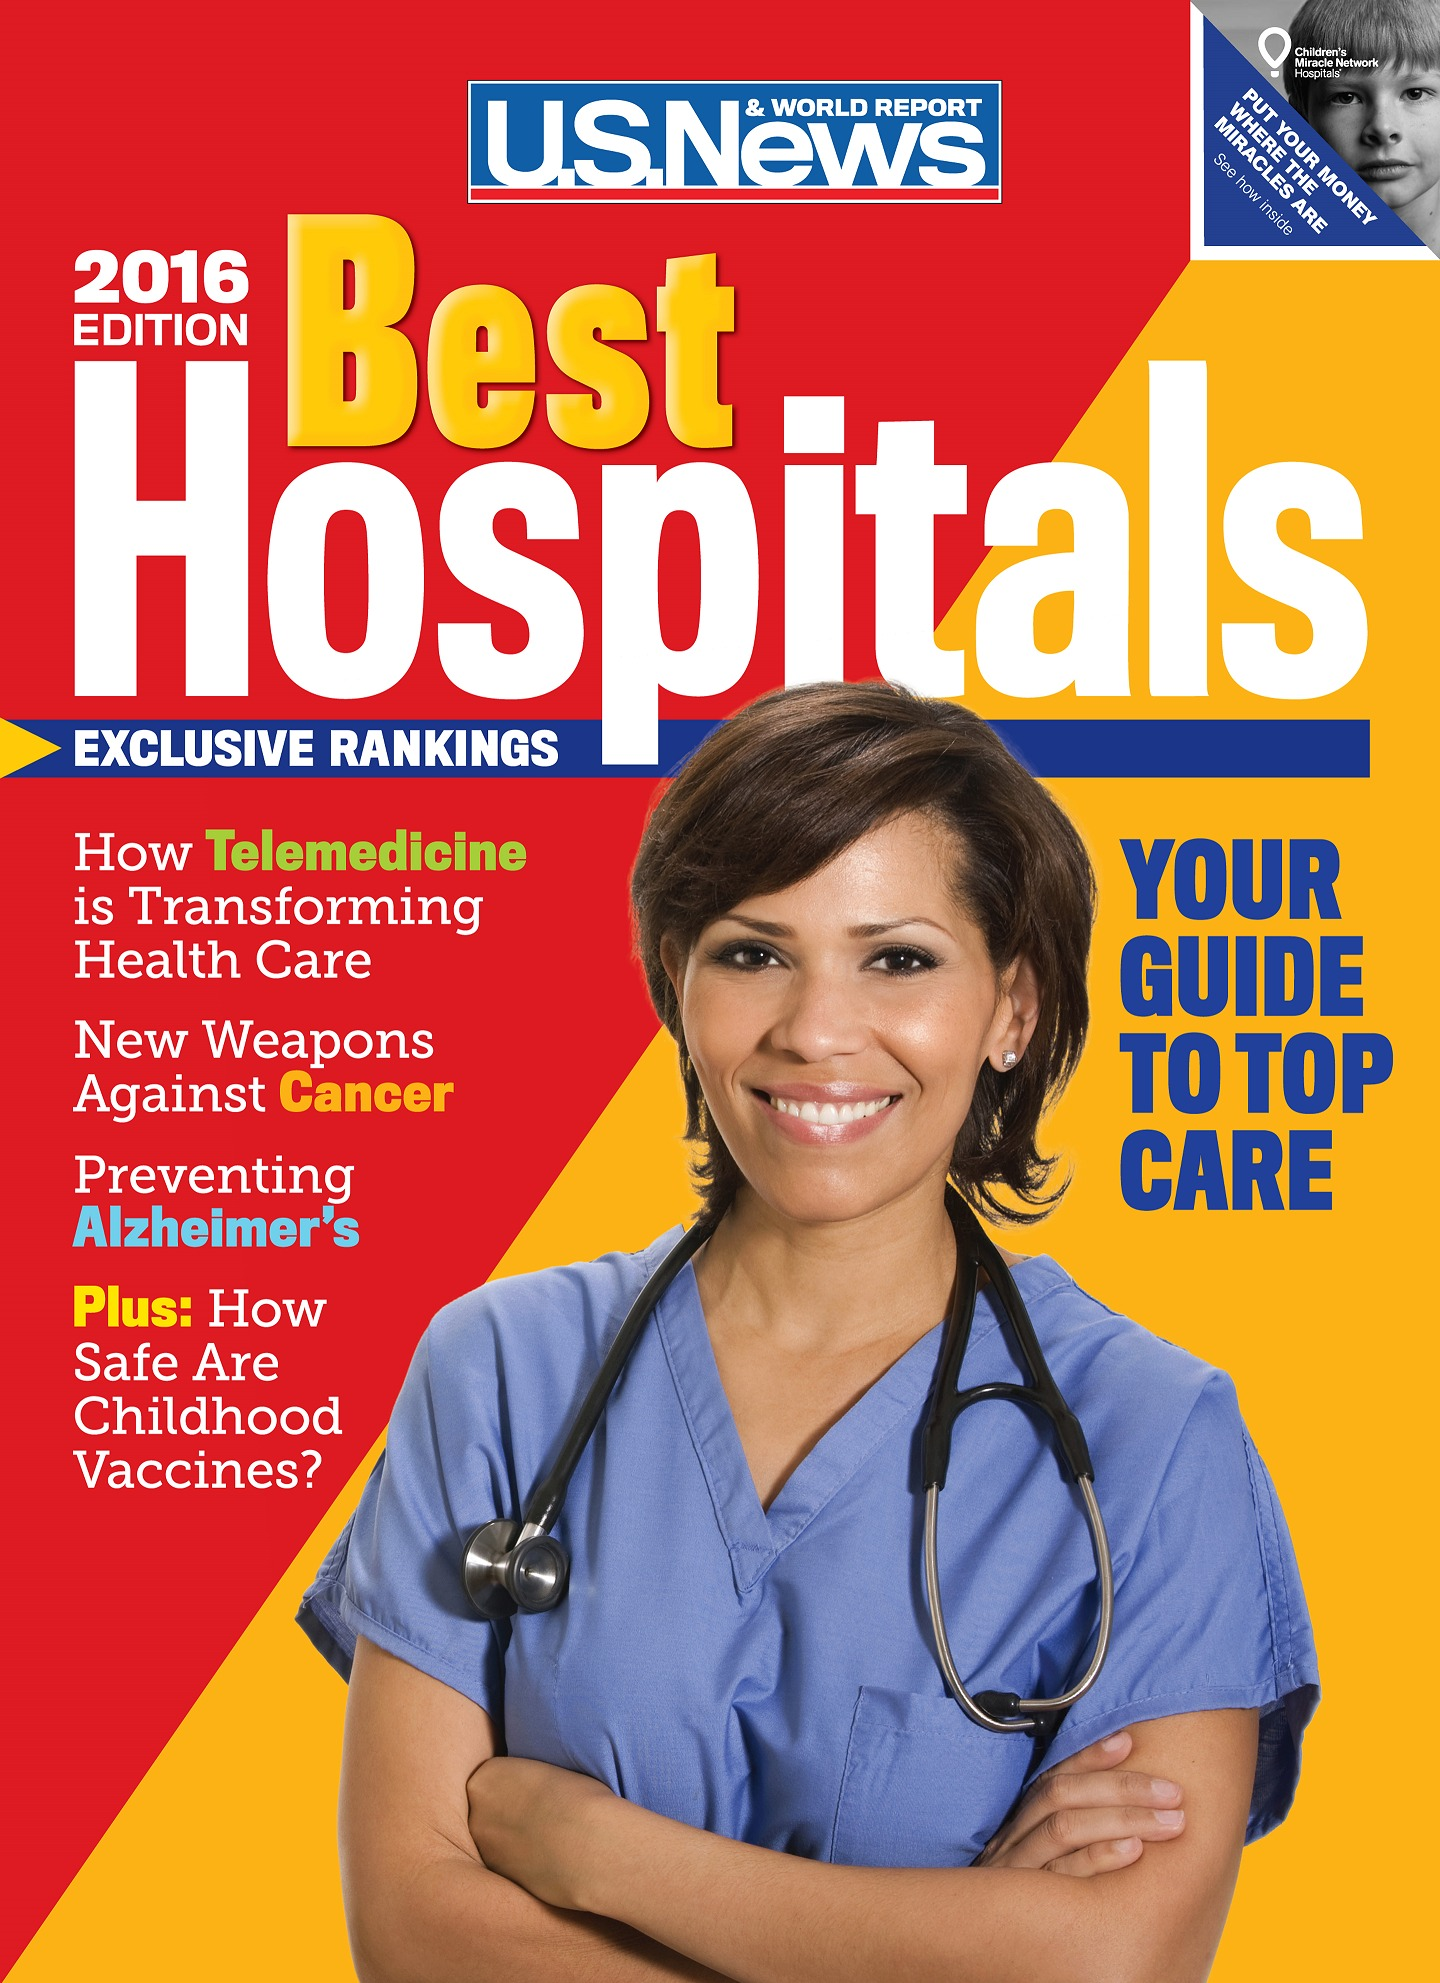 Best Hospitals 2016  by  U.S. News and World Report